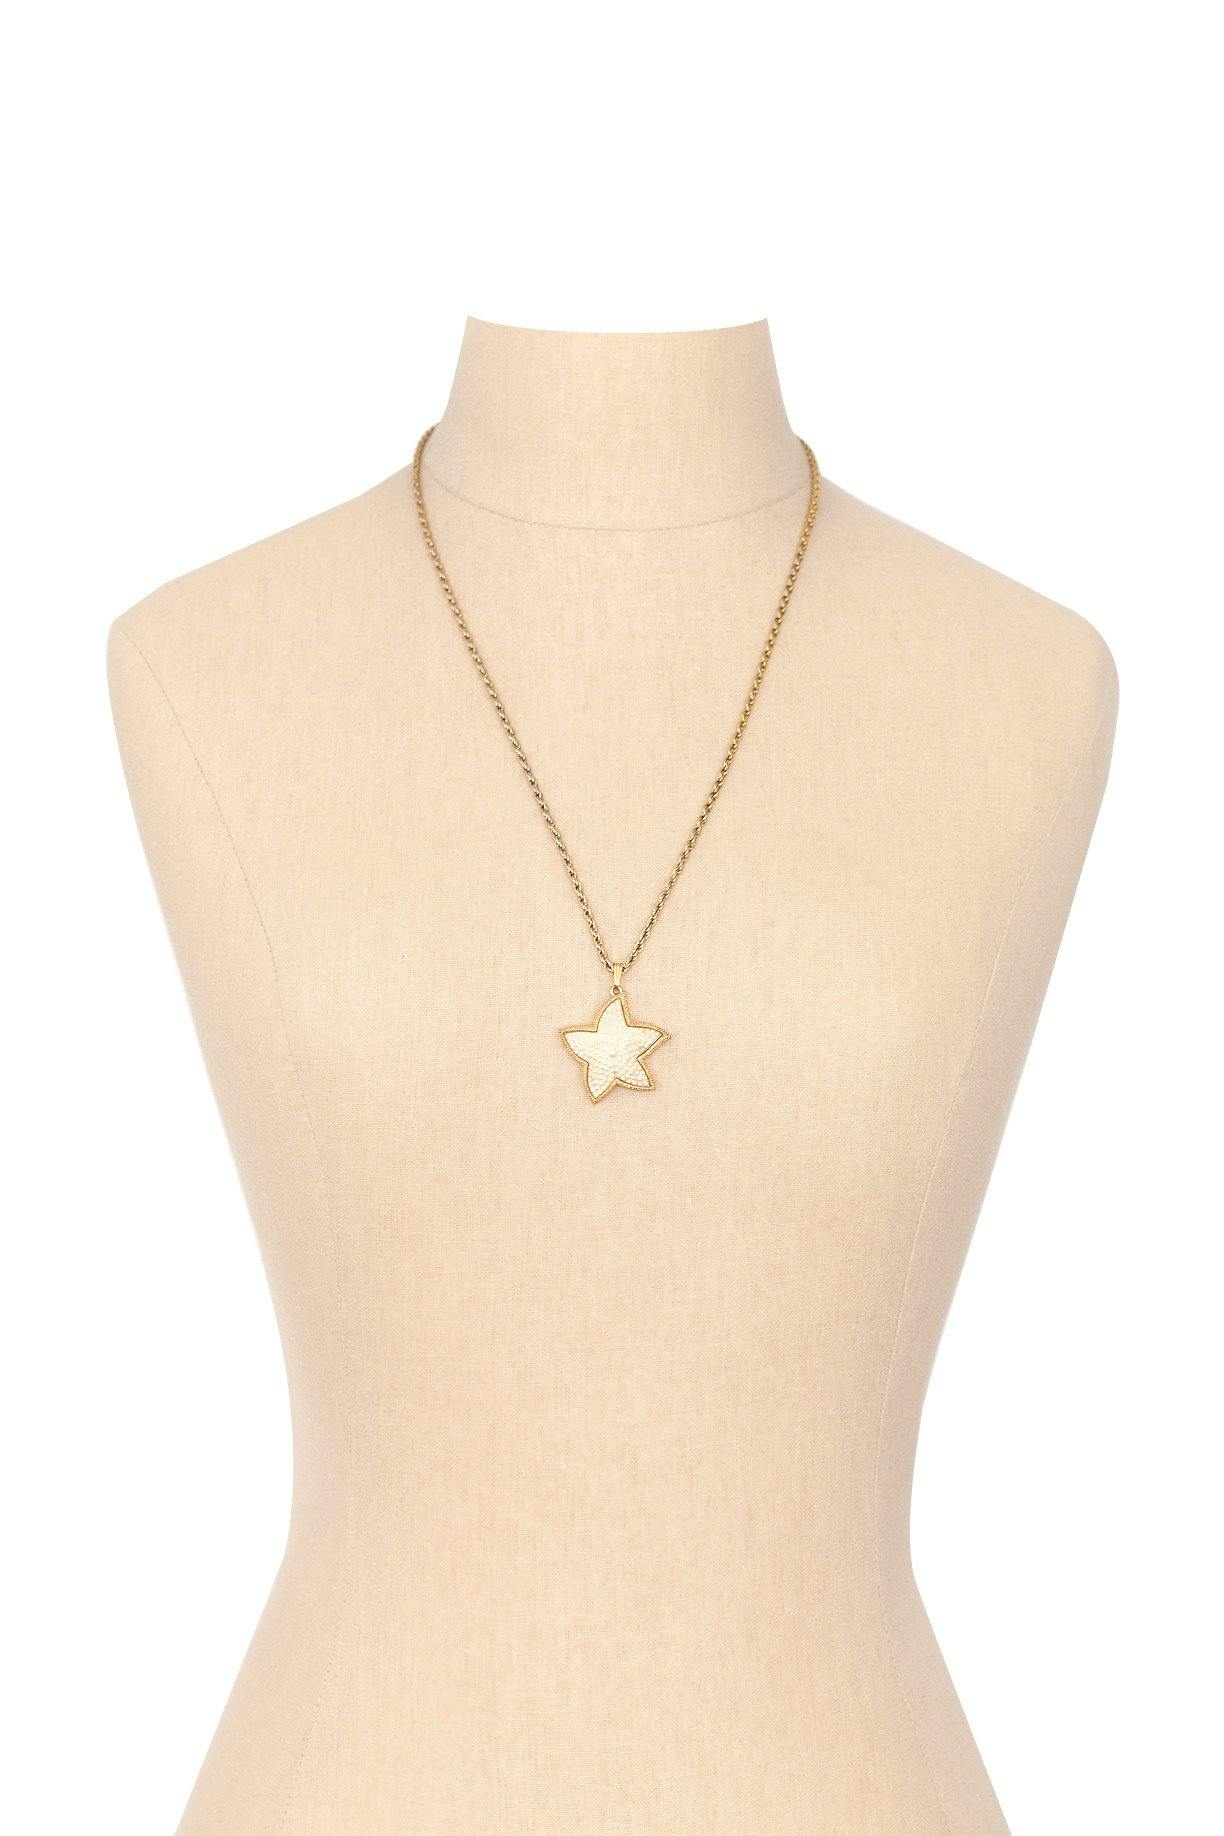 80's__Vintage__Pearl Star Pendant Necklace